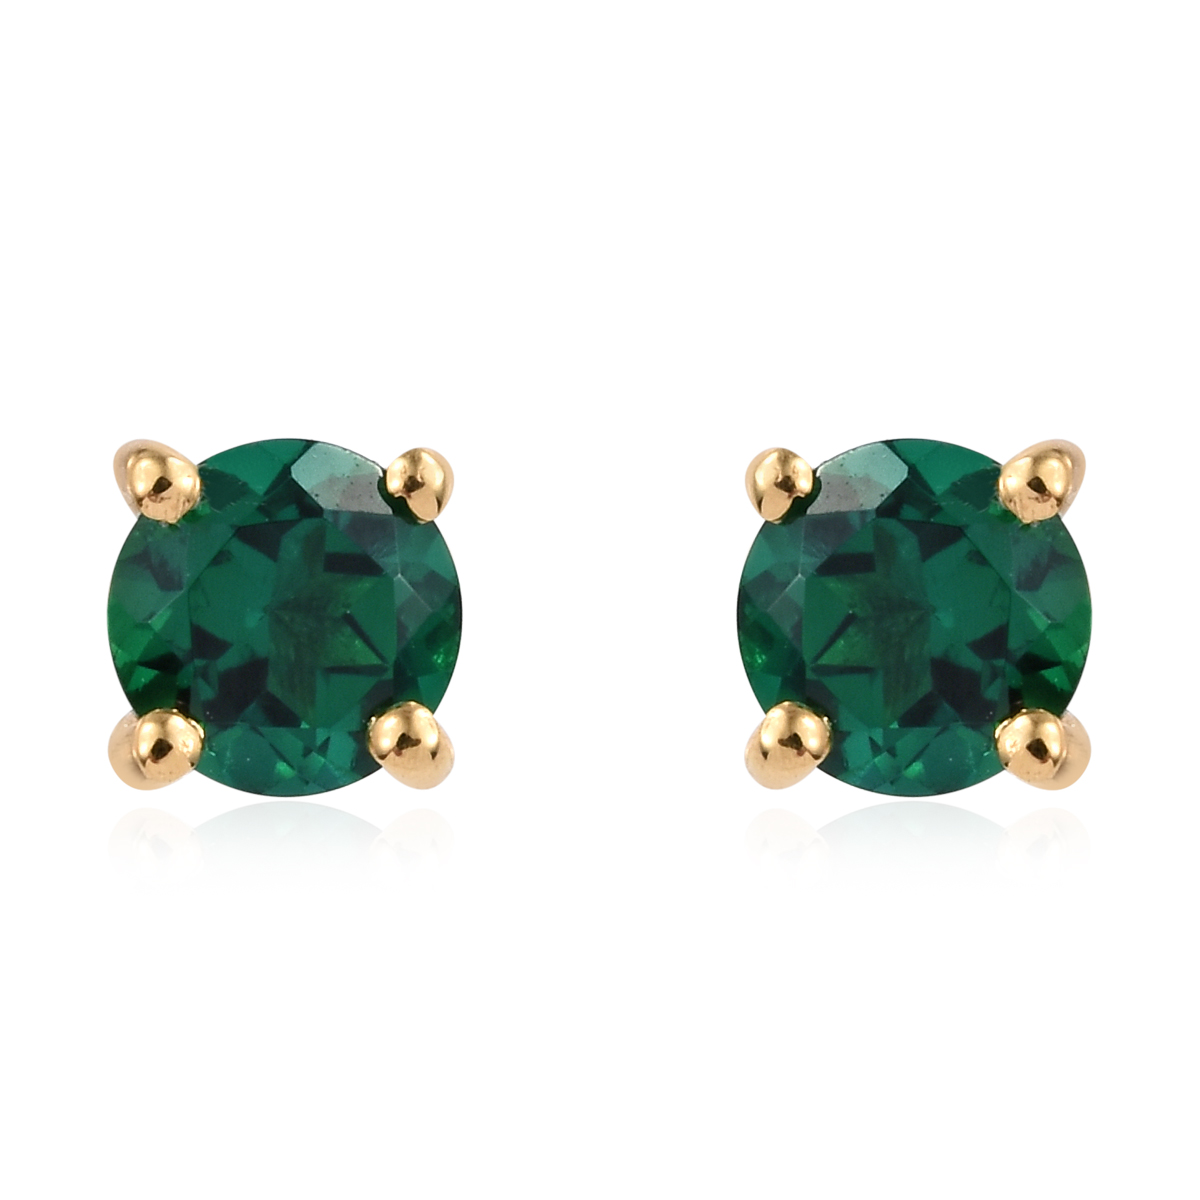 f4bb2fba0eac9 Lab Created Emerald 14K YG Over Sterling Silver Stud Earrings 0.90 ctw